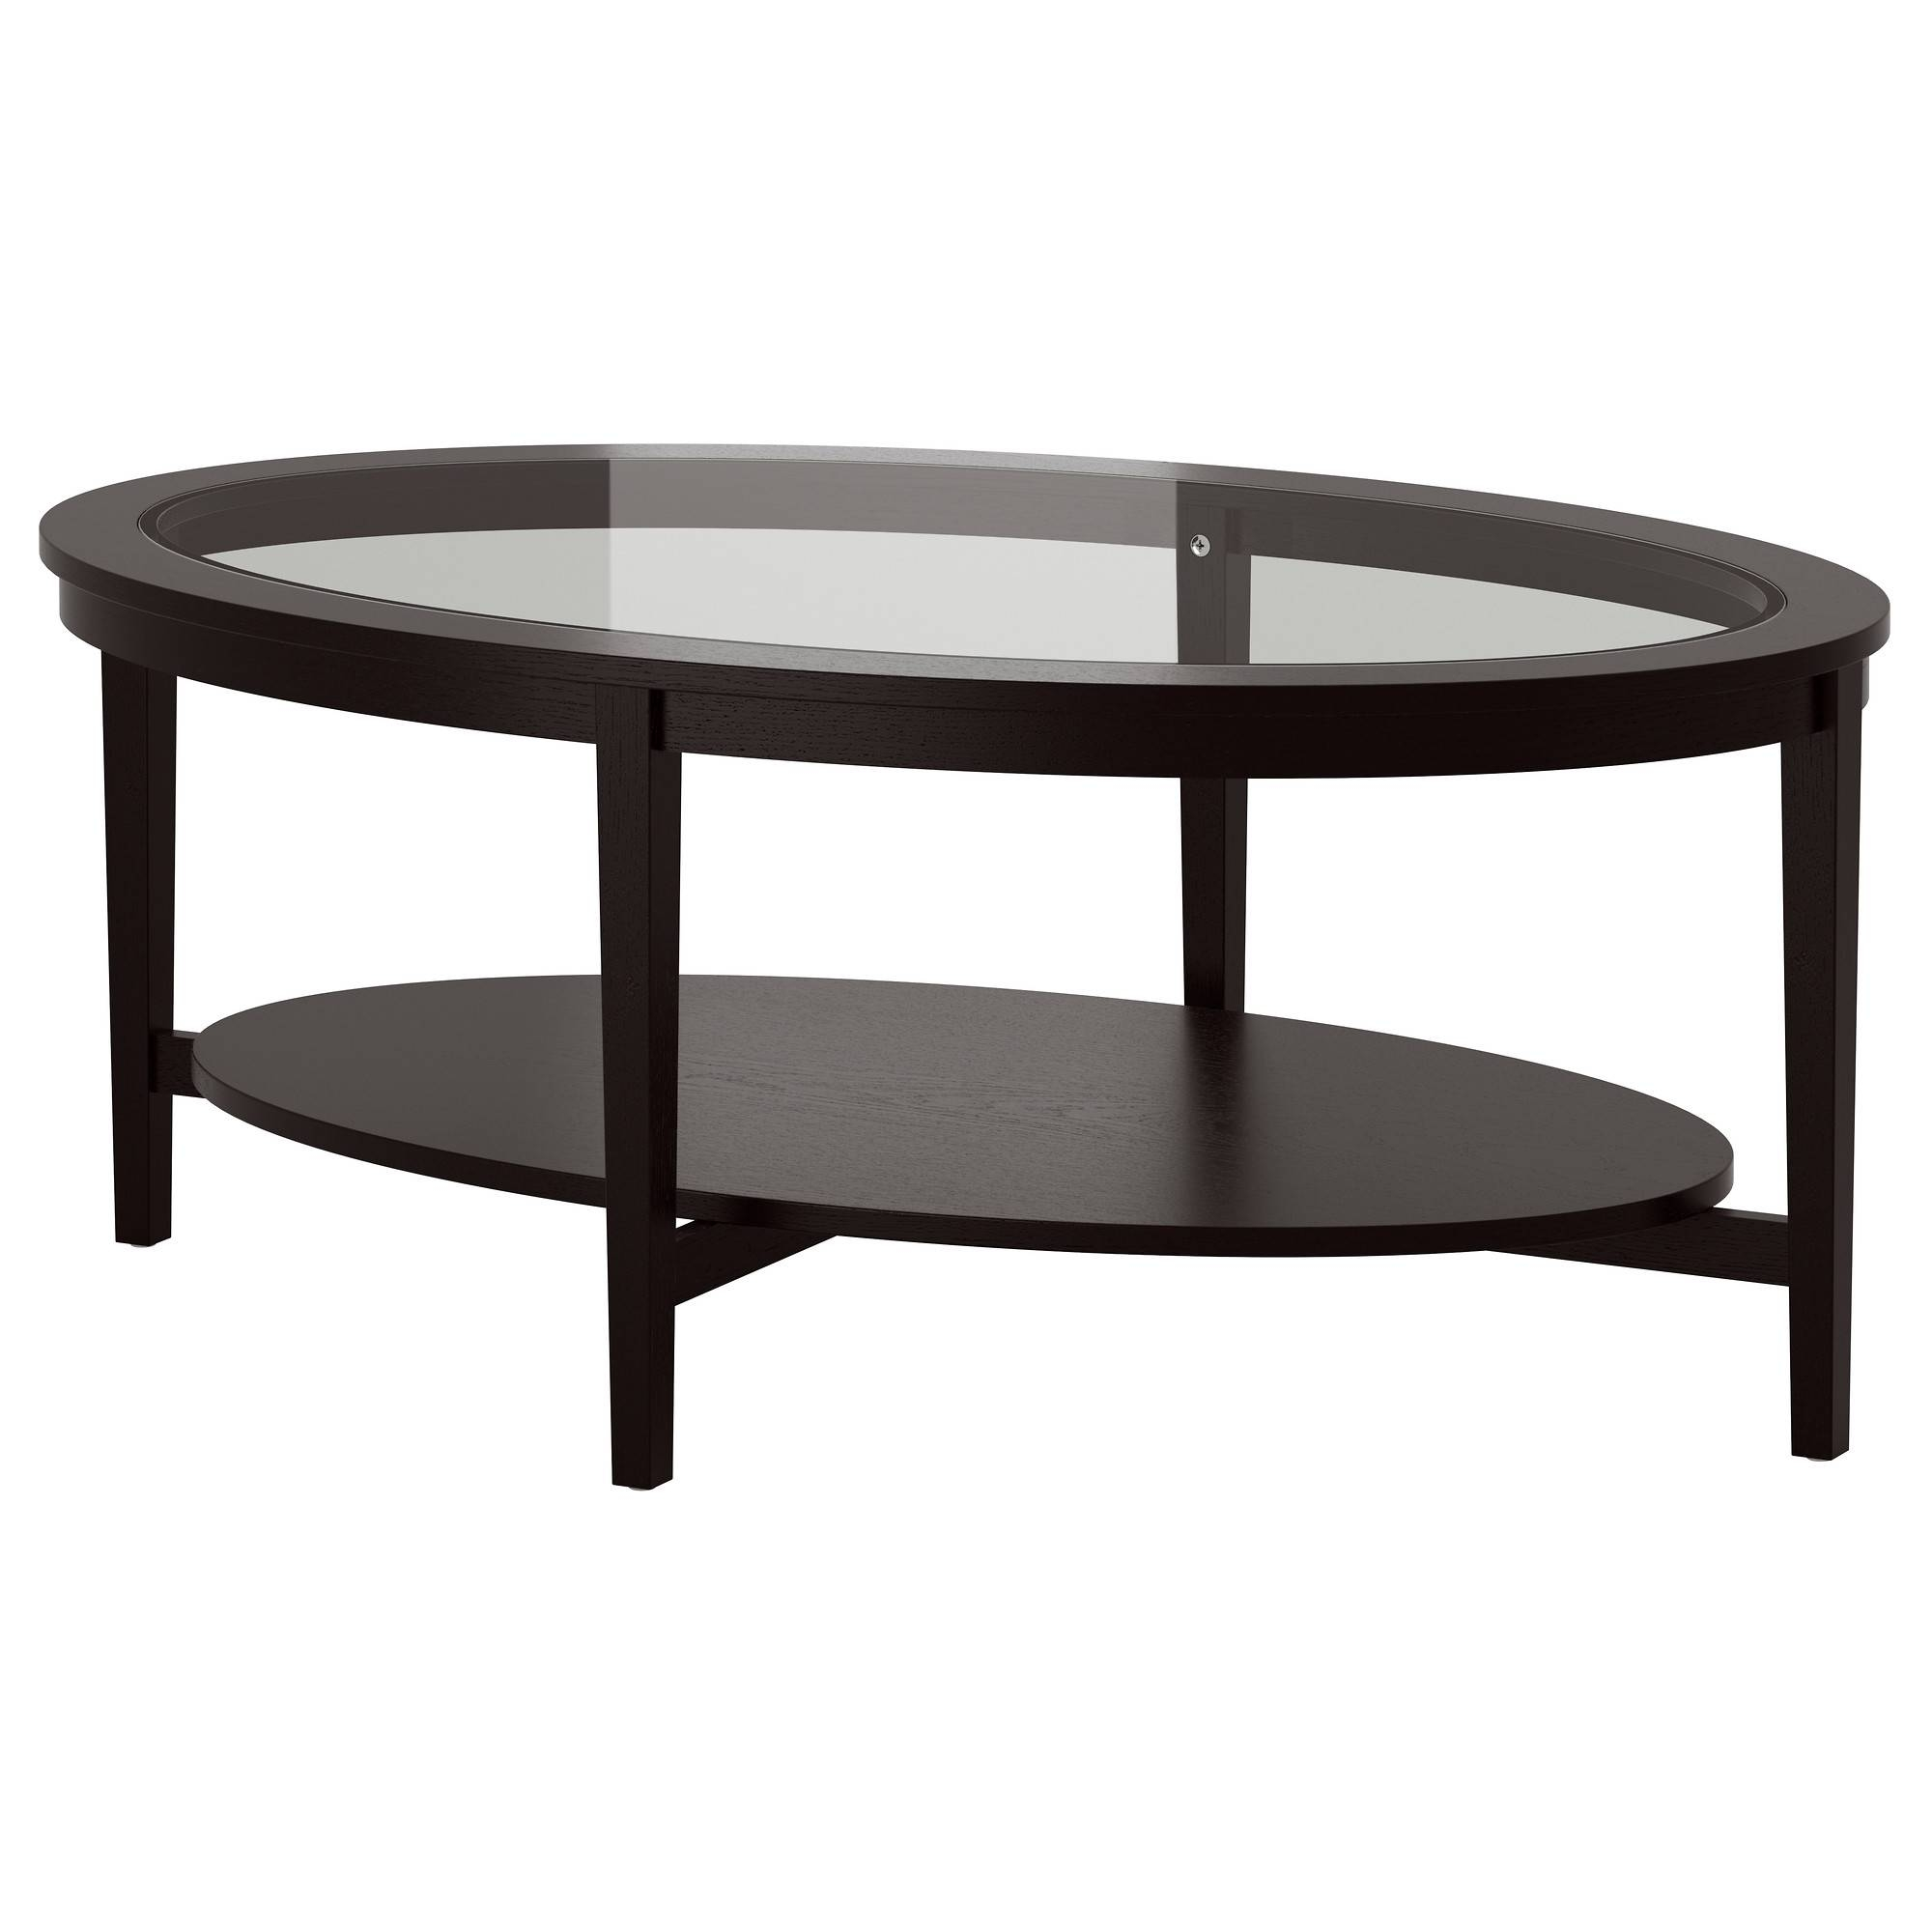 Coffee Table: Popular Black Glass Coffee Table Design Ideas Modern within Dark Glass Coffee Tables (Image 20 of 30)